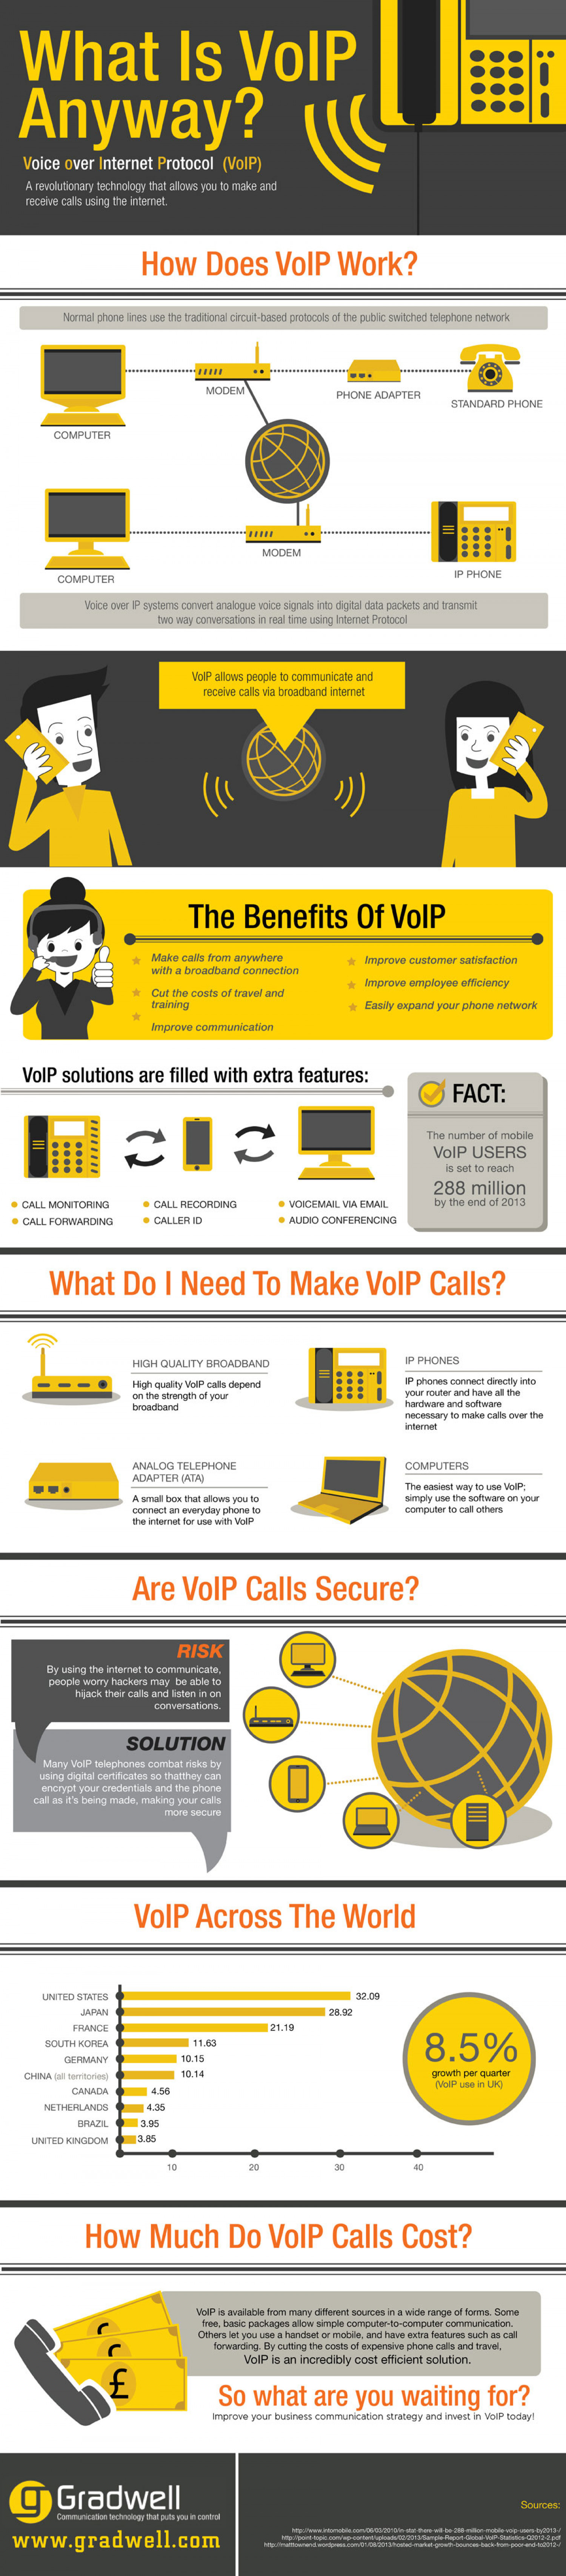 What Is VoIP Anyway? Infographic